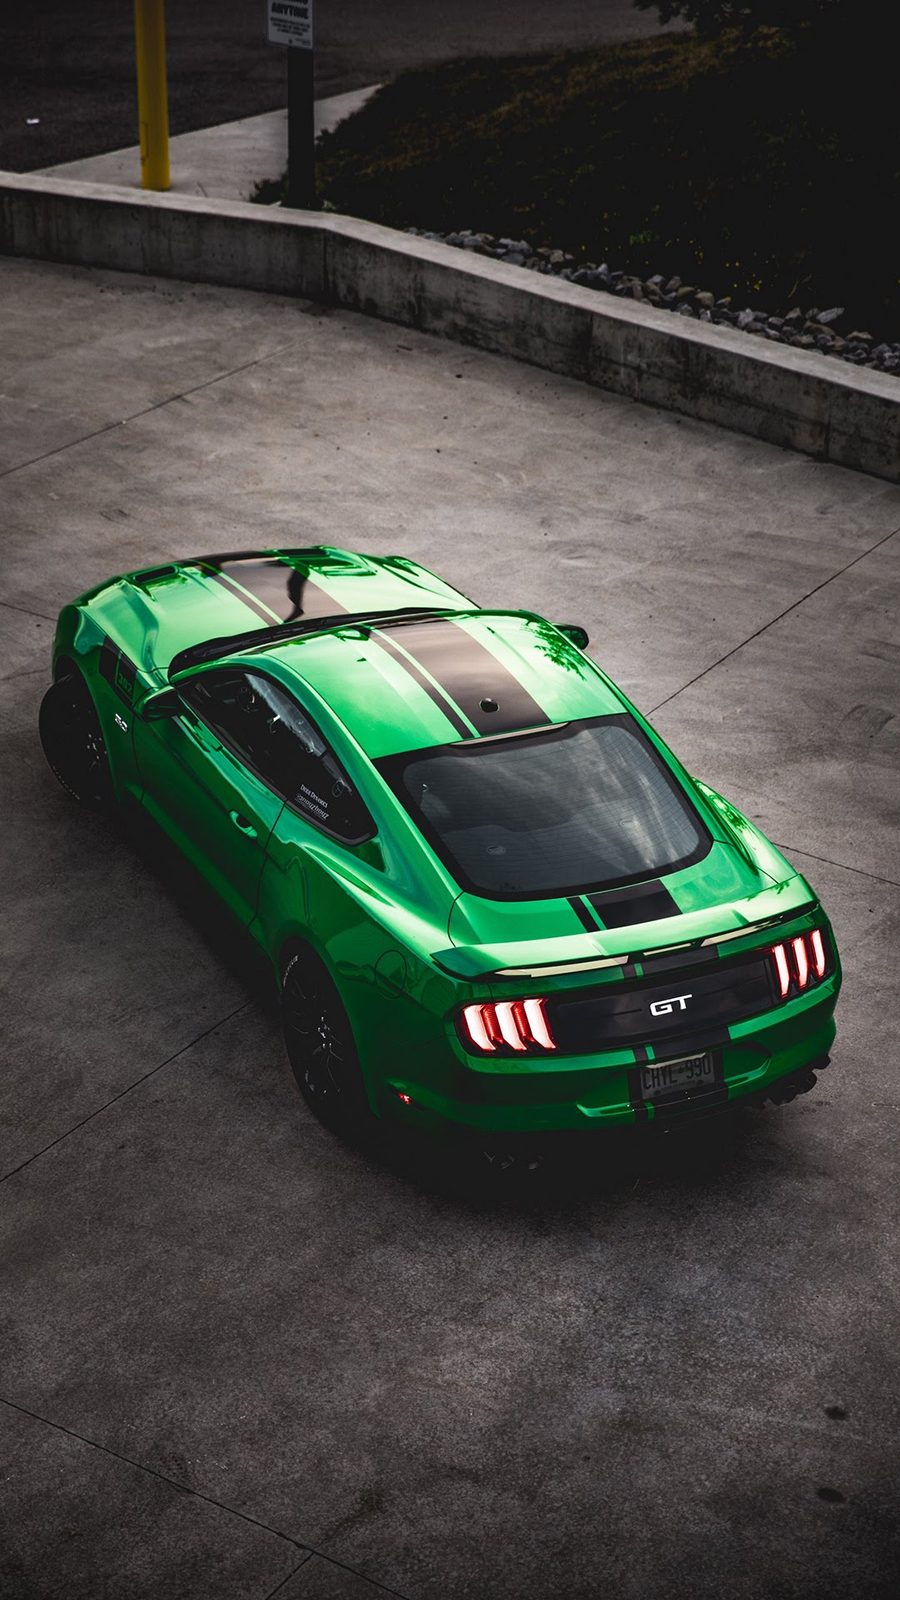 Super Car Wallpapers for Mobile Free Download – Best Wallpapers (24)